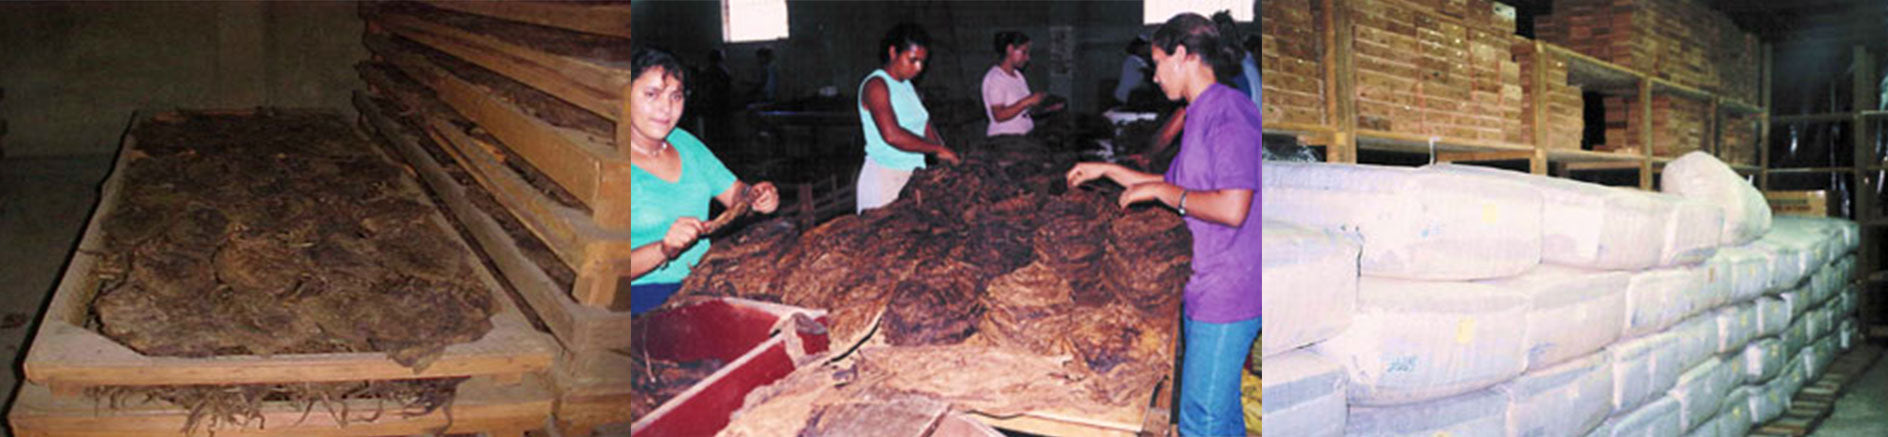 aging tobaco leaves